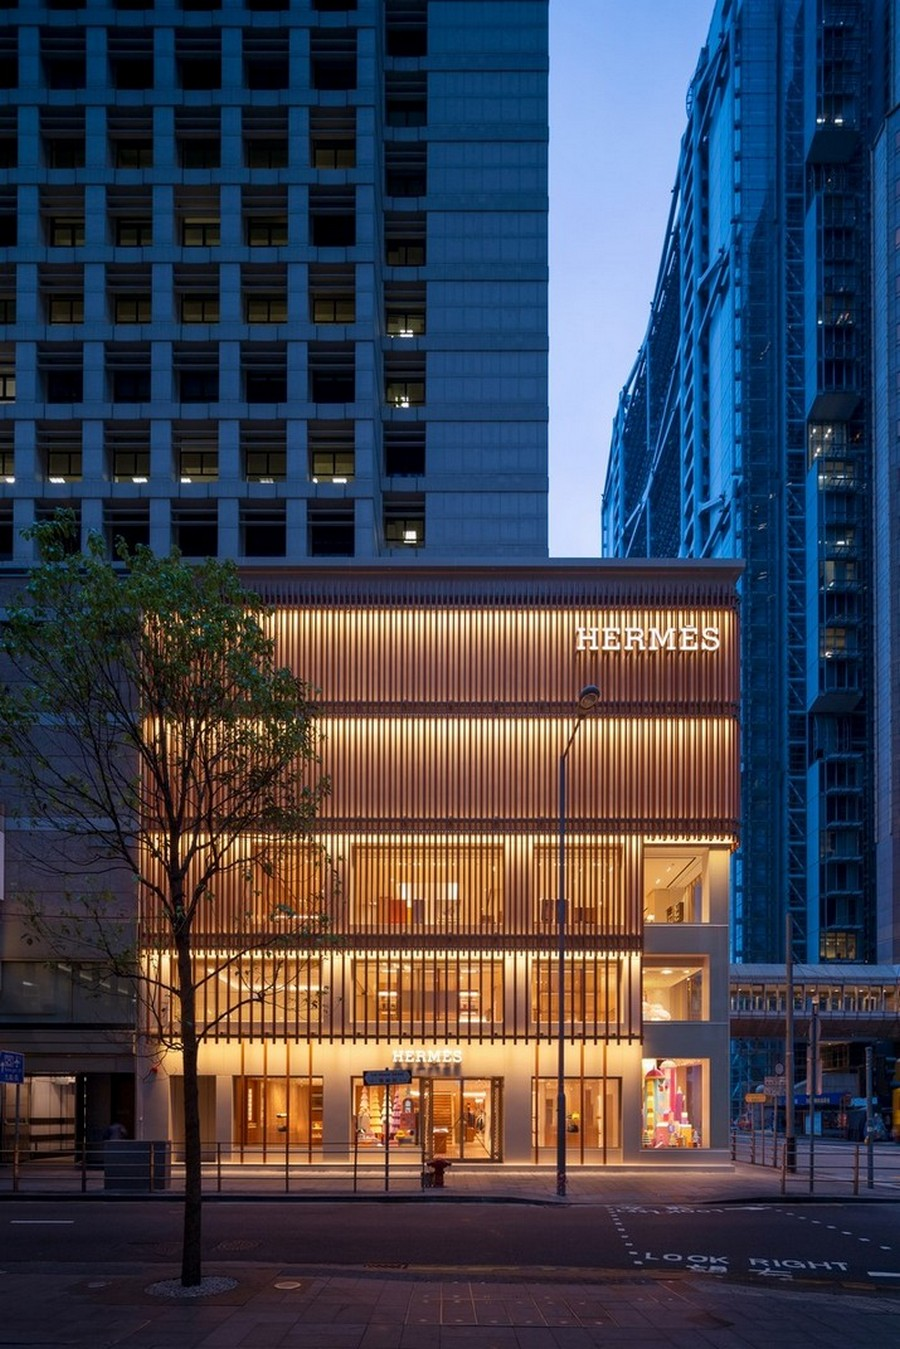 RDAI Paris: know more about the Hermès Showroom in Hong Kong rdai paris RDAI Paris: know more about the Hermès Showroom in Hong Kong Le Magasins dHerm  s    Hong Long par RDAI Paris 6